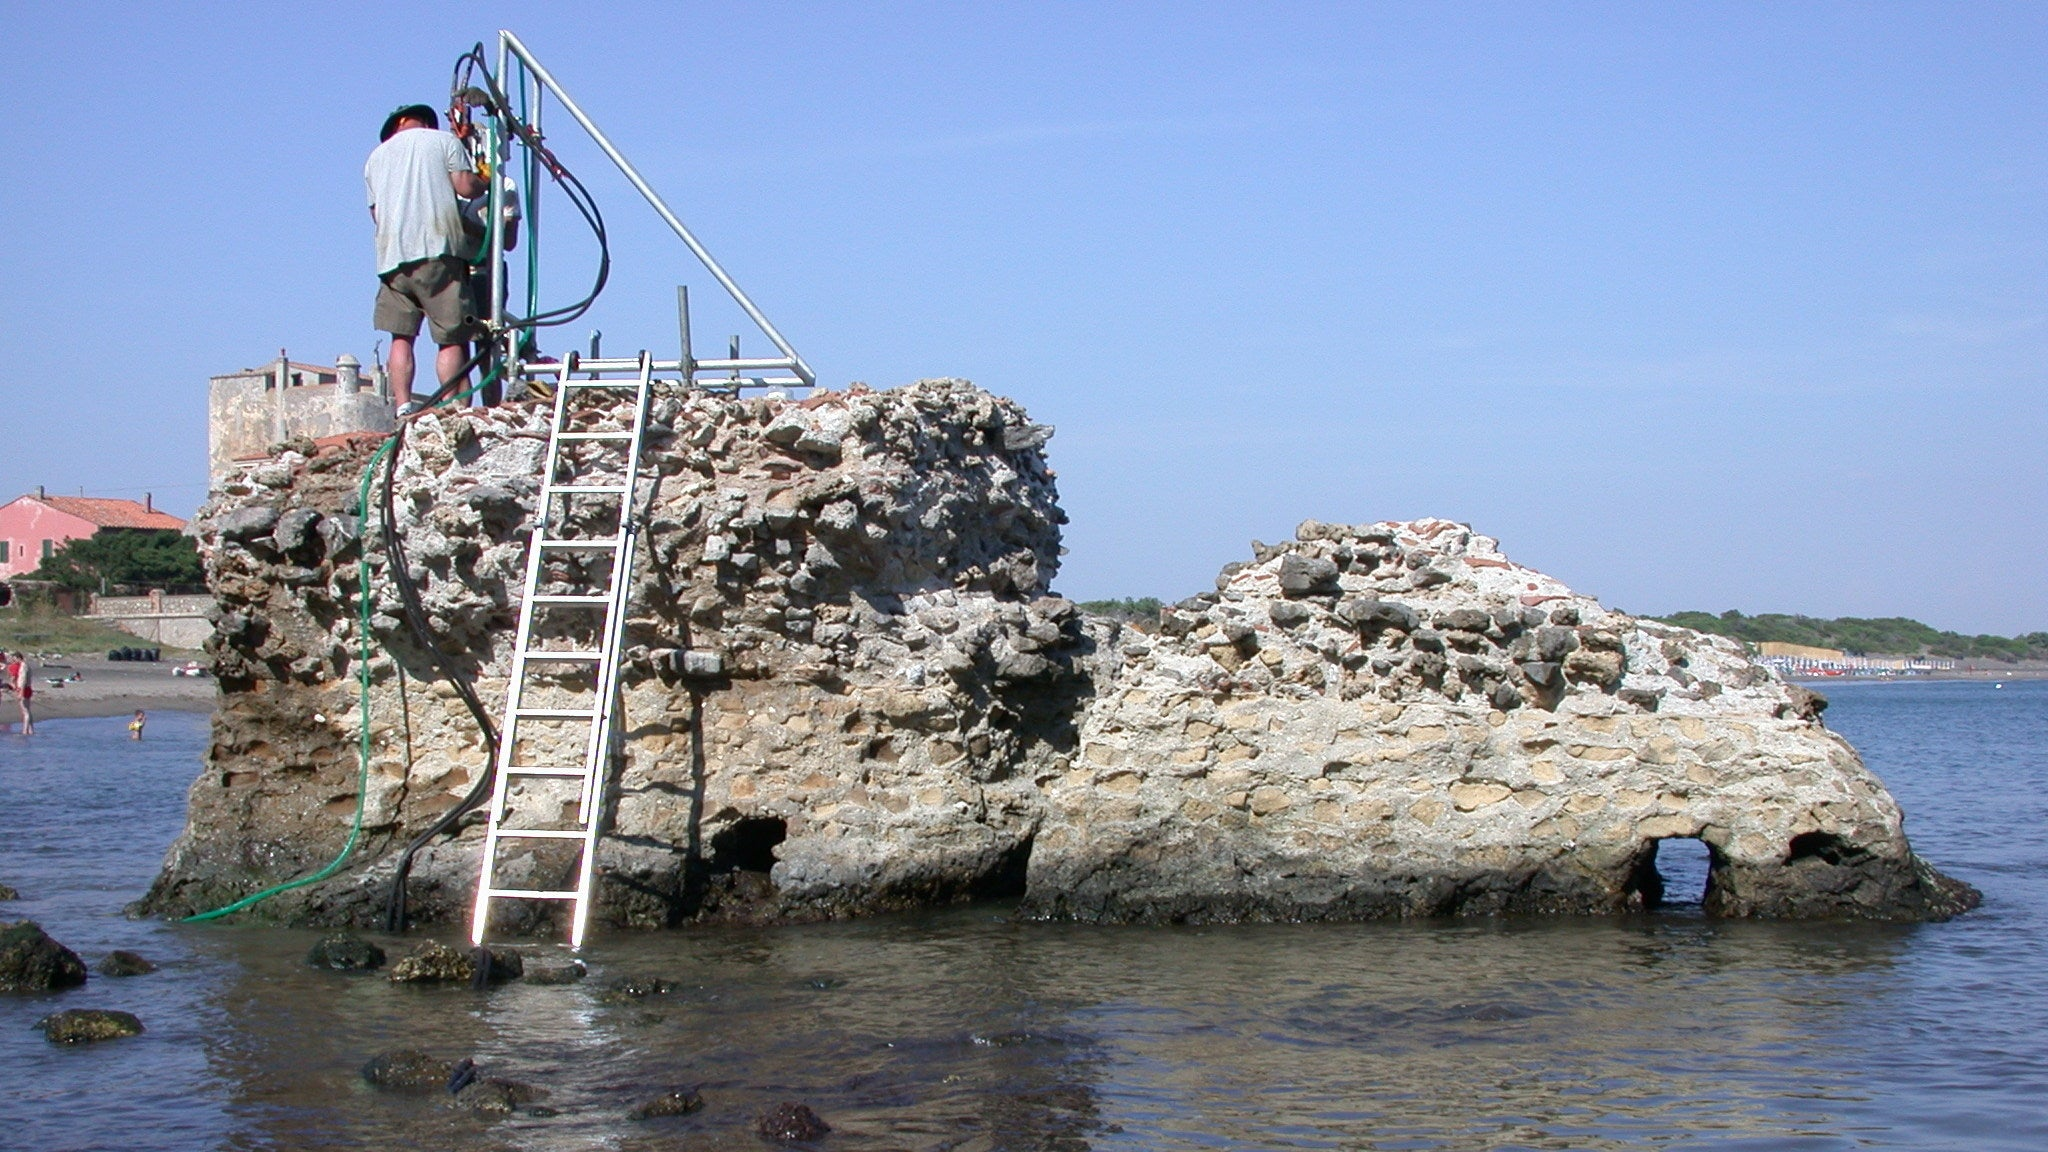 Seawater is the secret to long-lasting Roman concrete